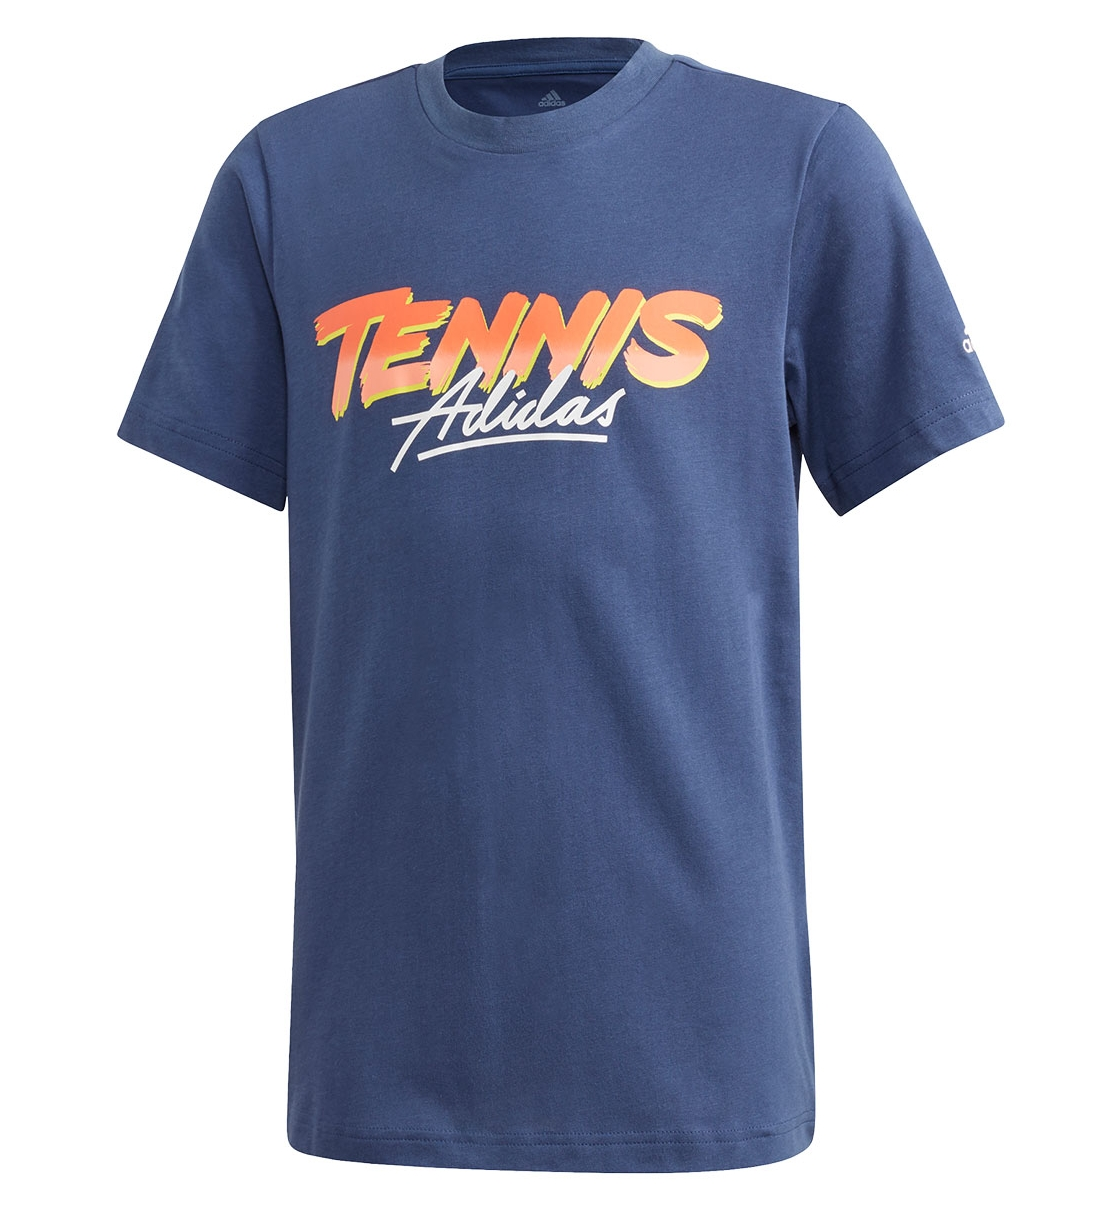 Adidas Ss20 Kids Tennis Graphic Tee